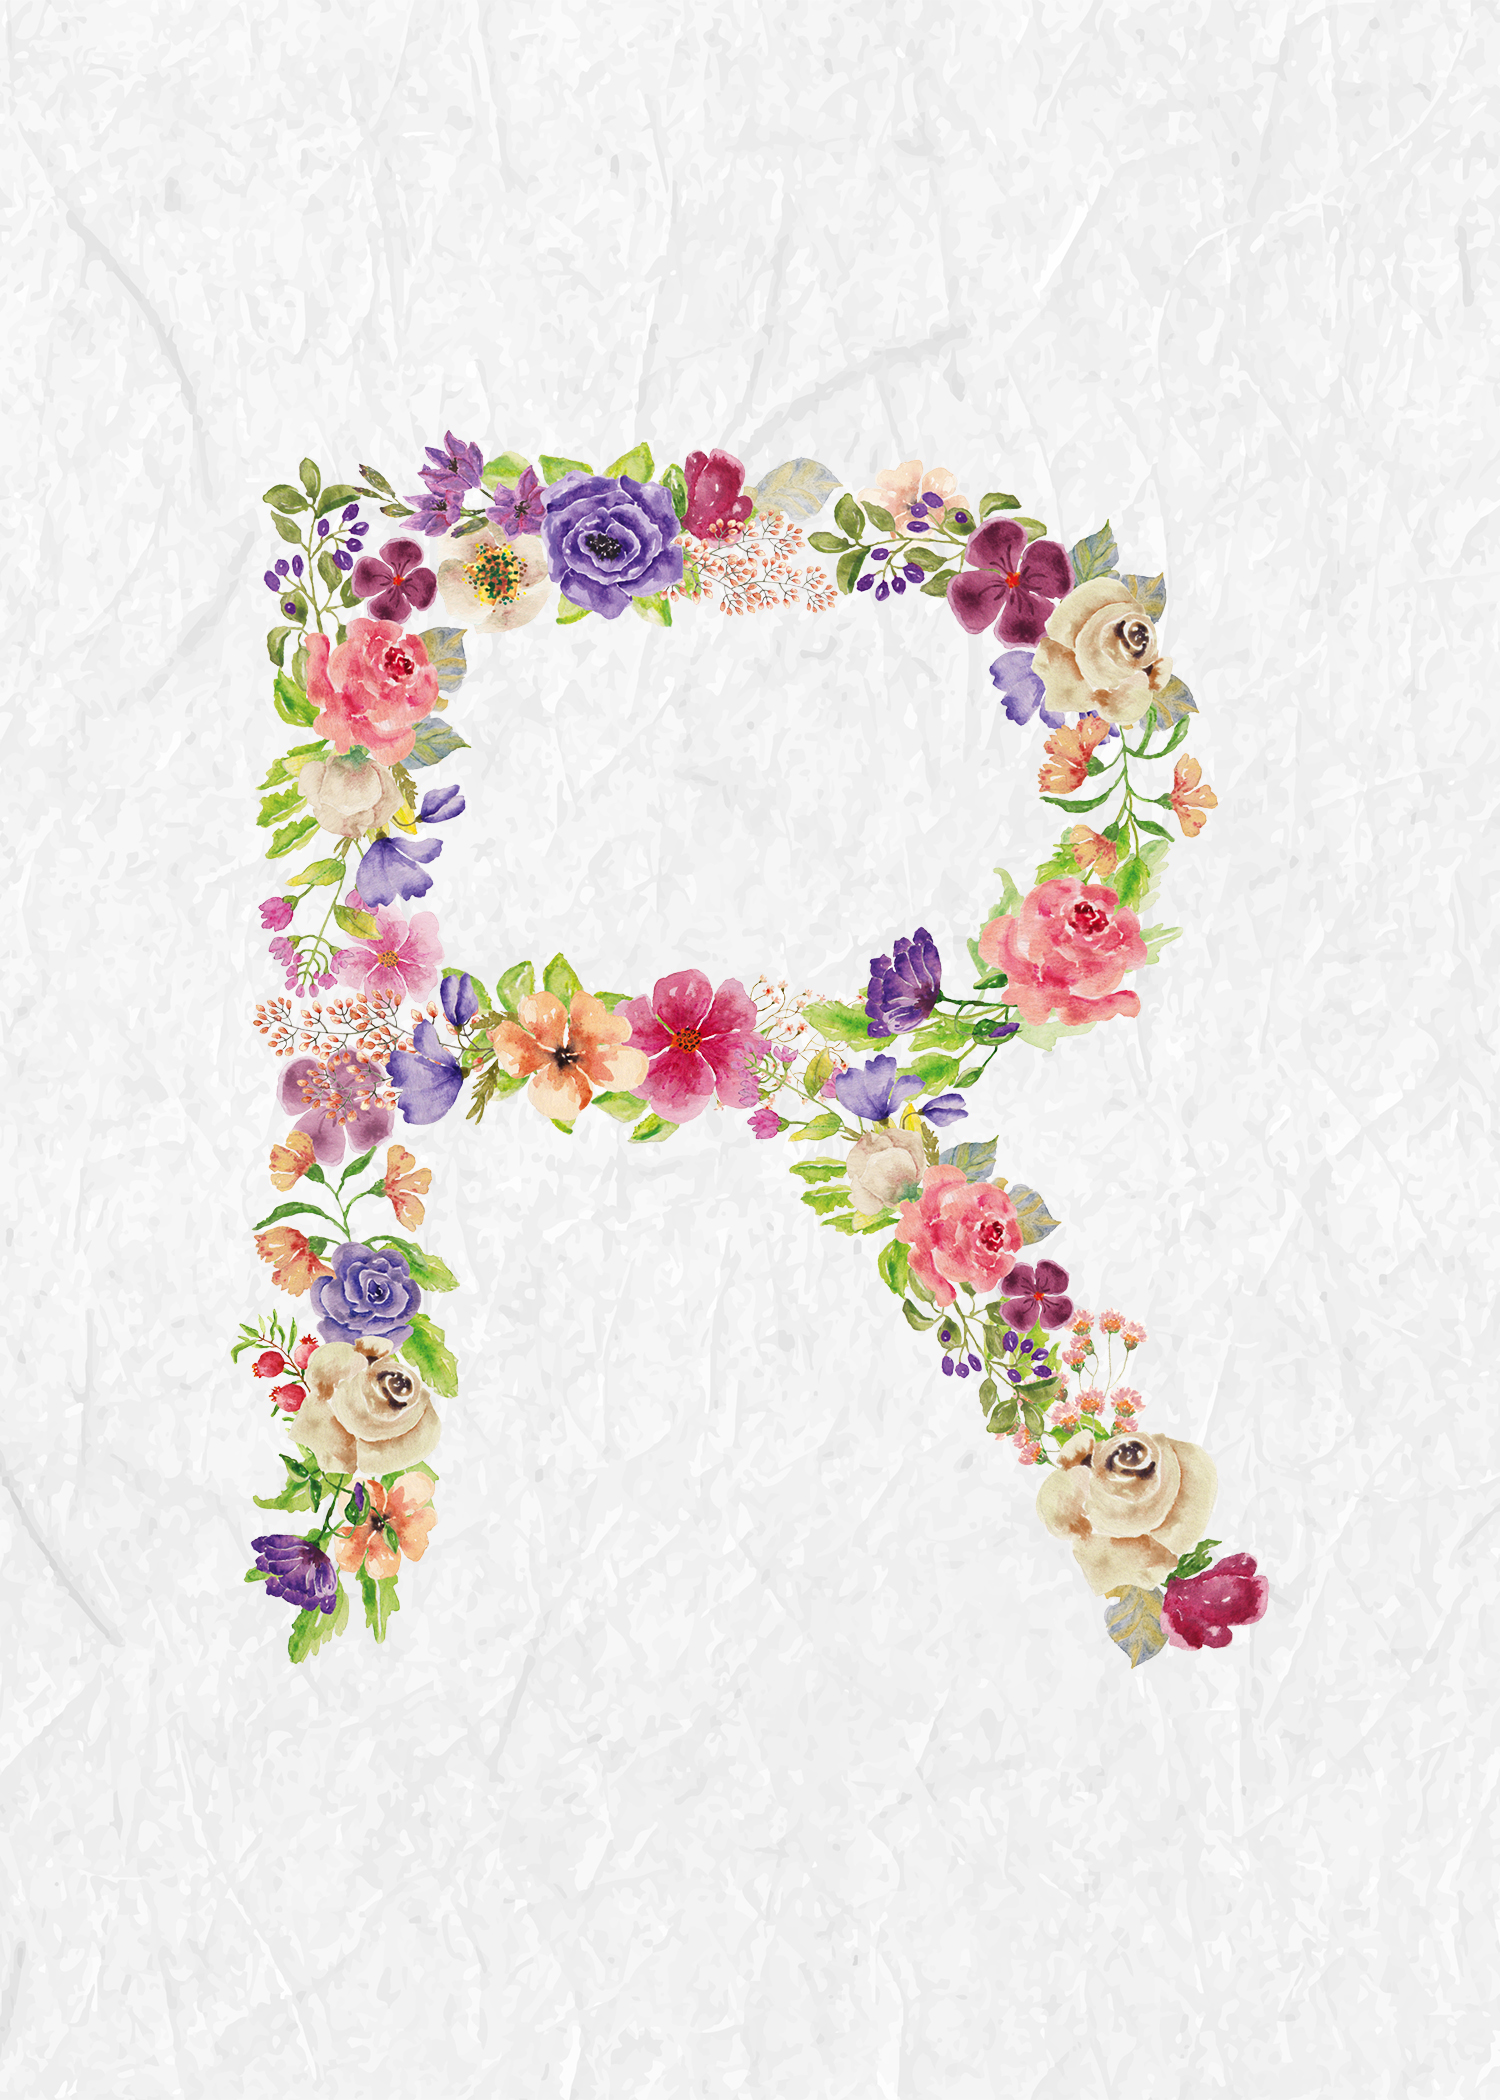 Floral Wreath Wallpaper